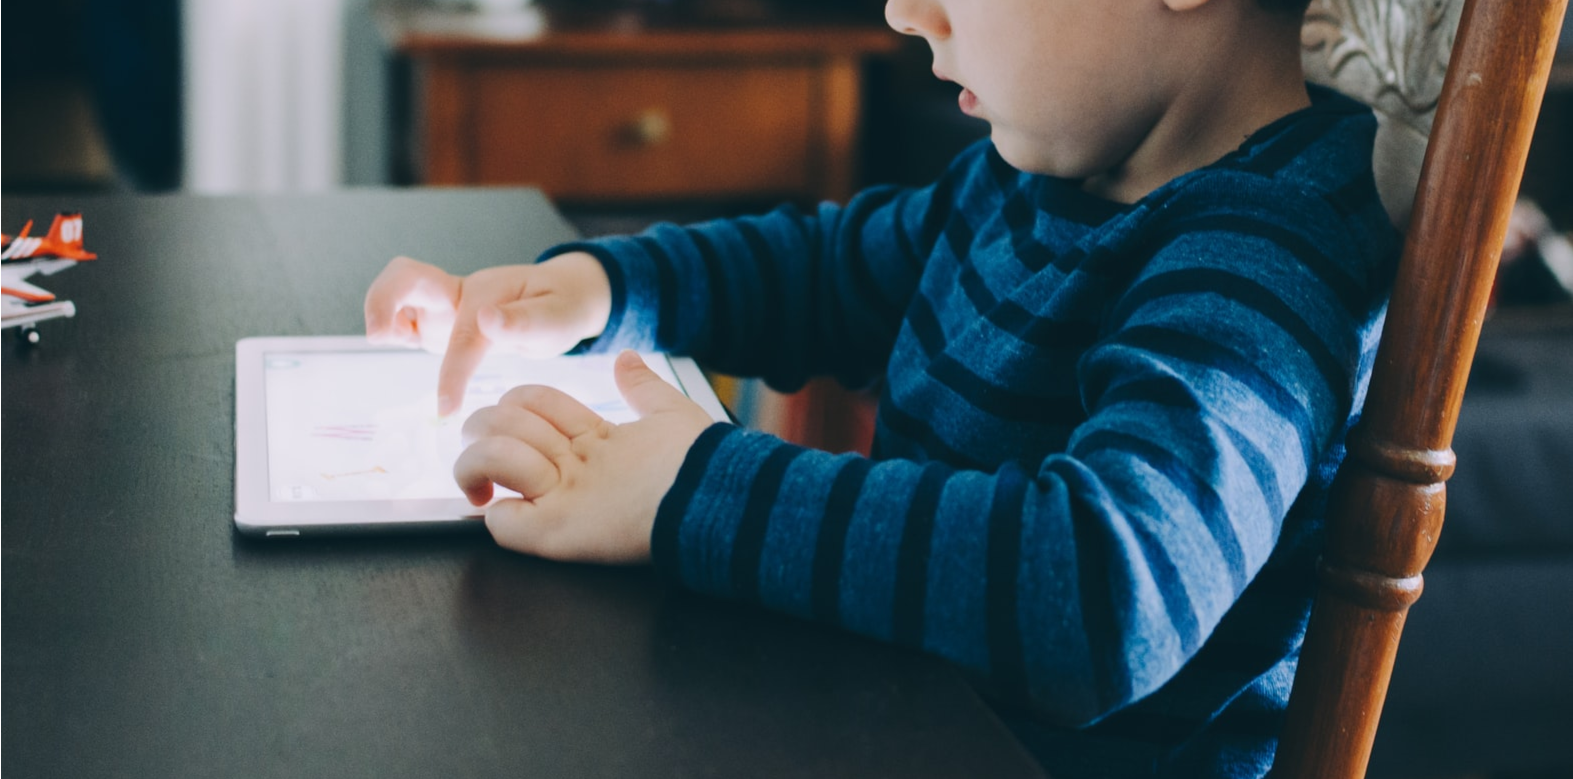 Can we come up with a way to protect children from tech addiction?